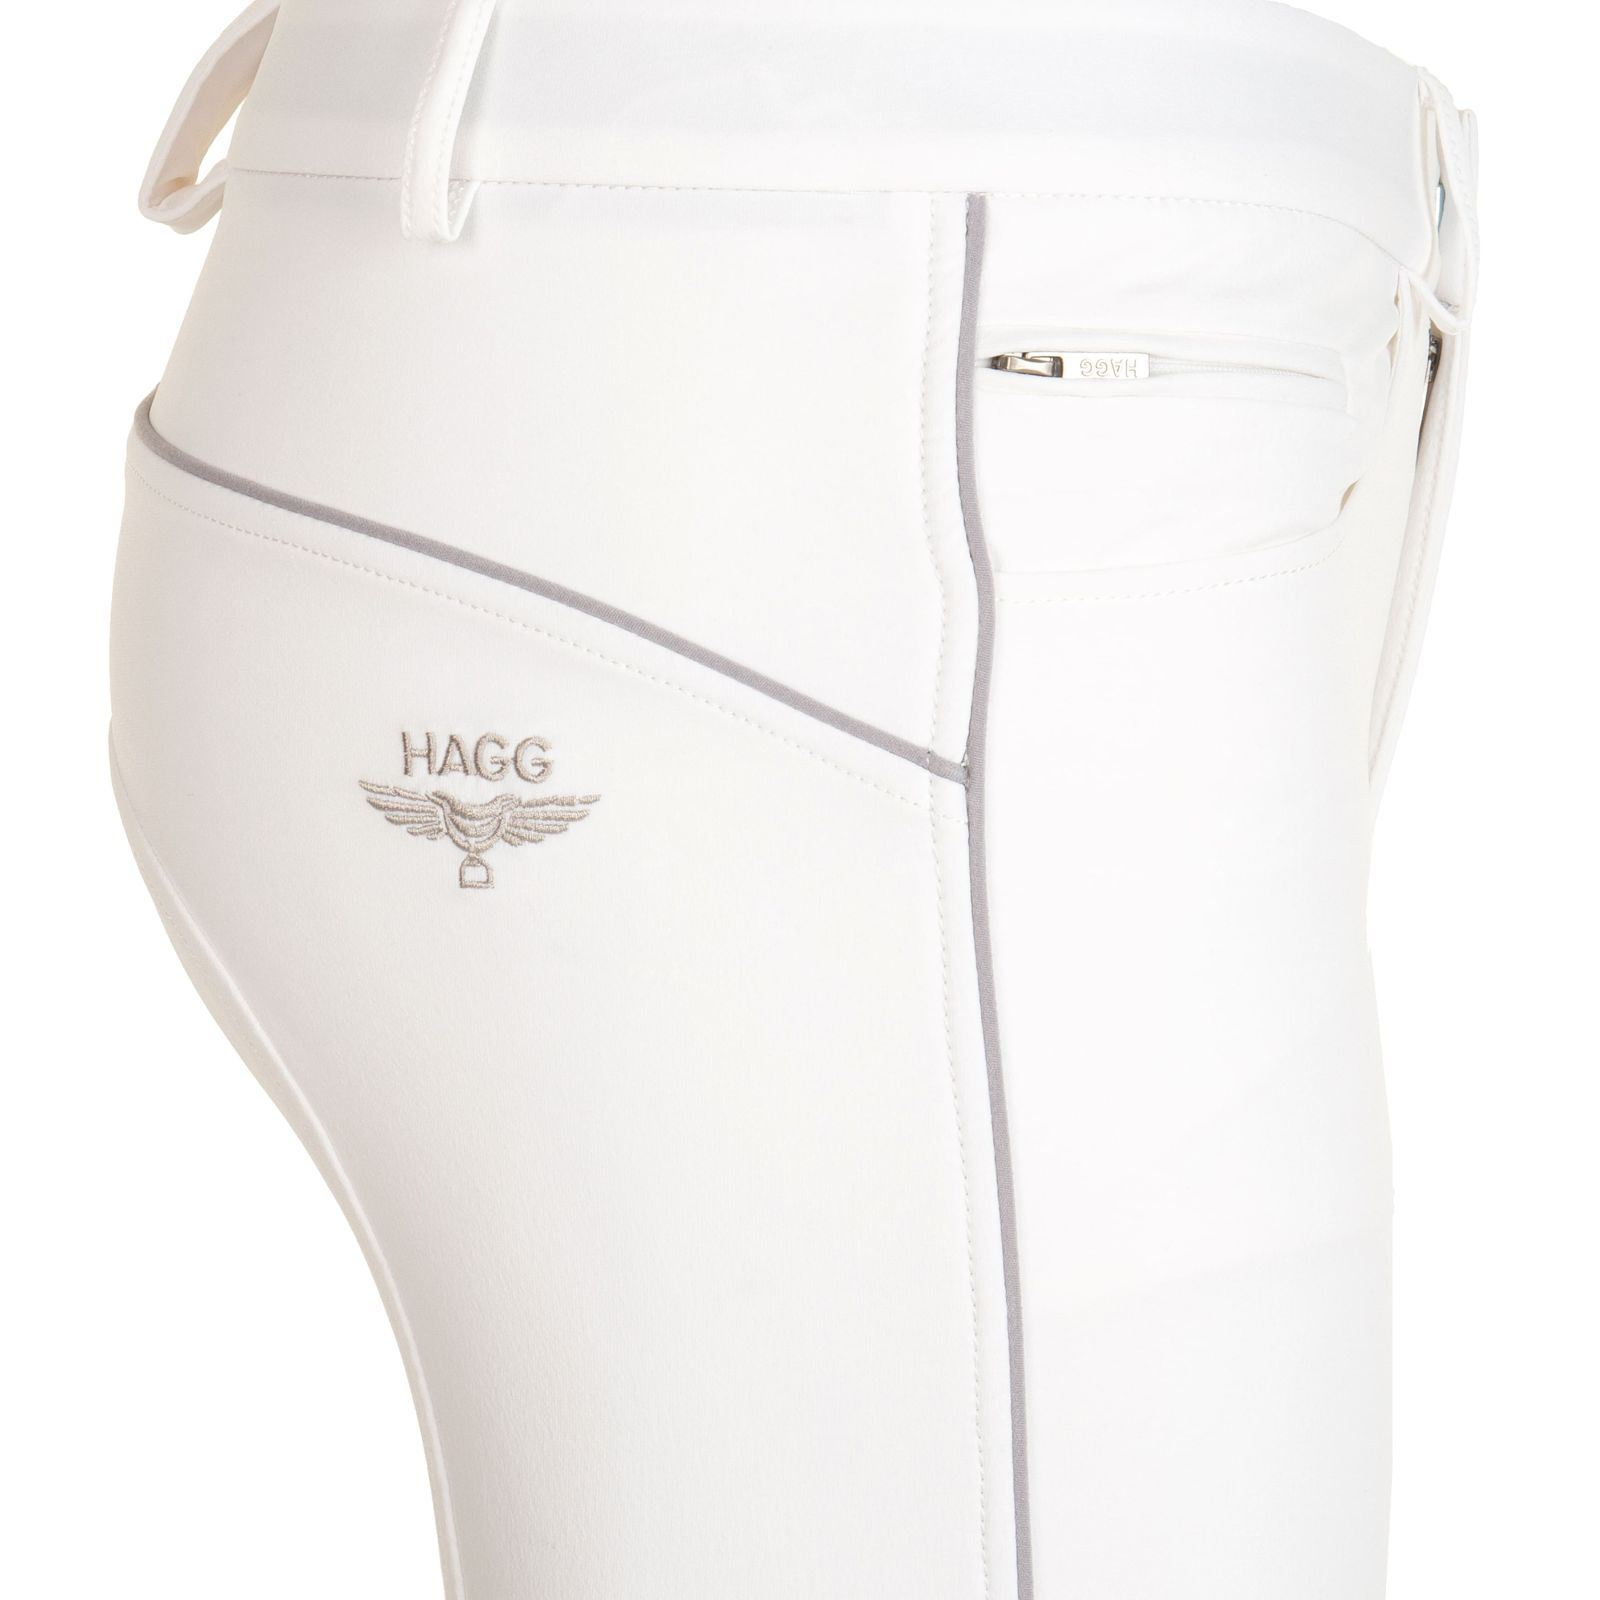 pantalon blanc equitation